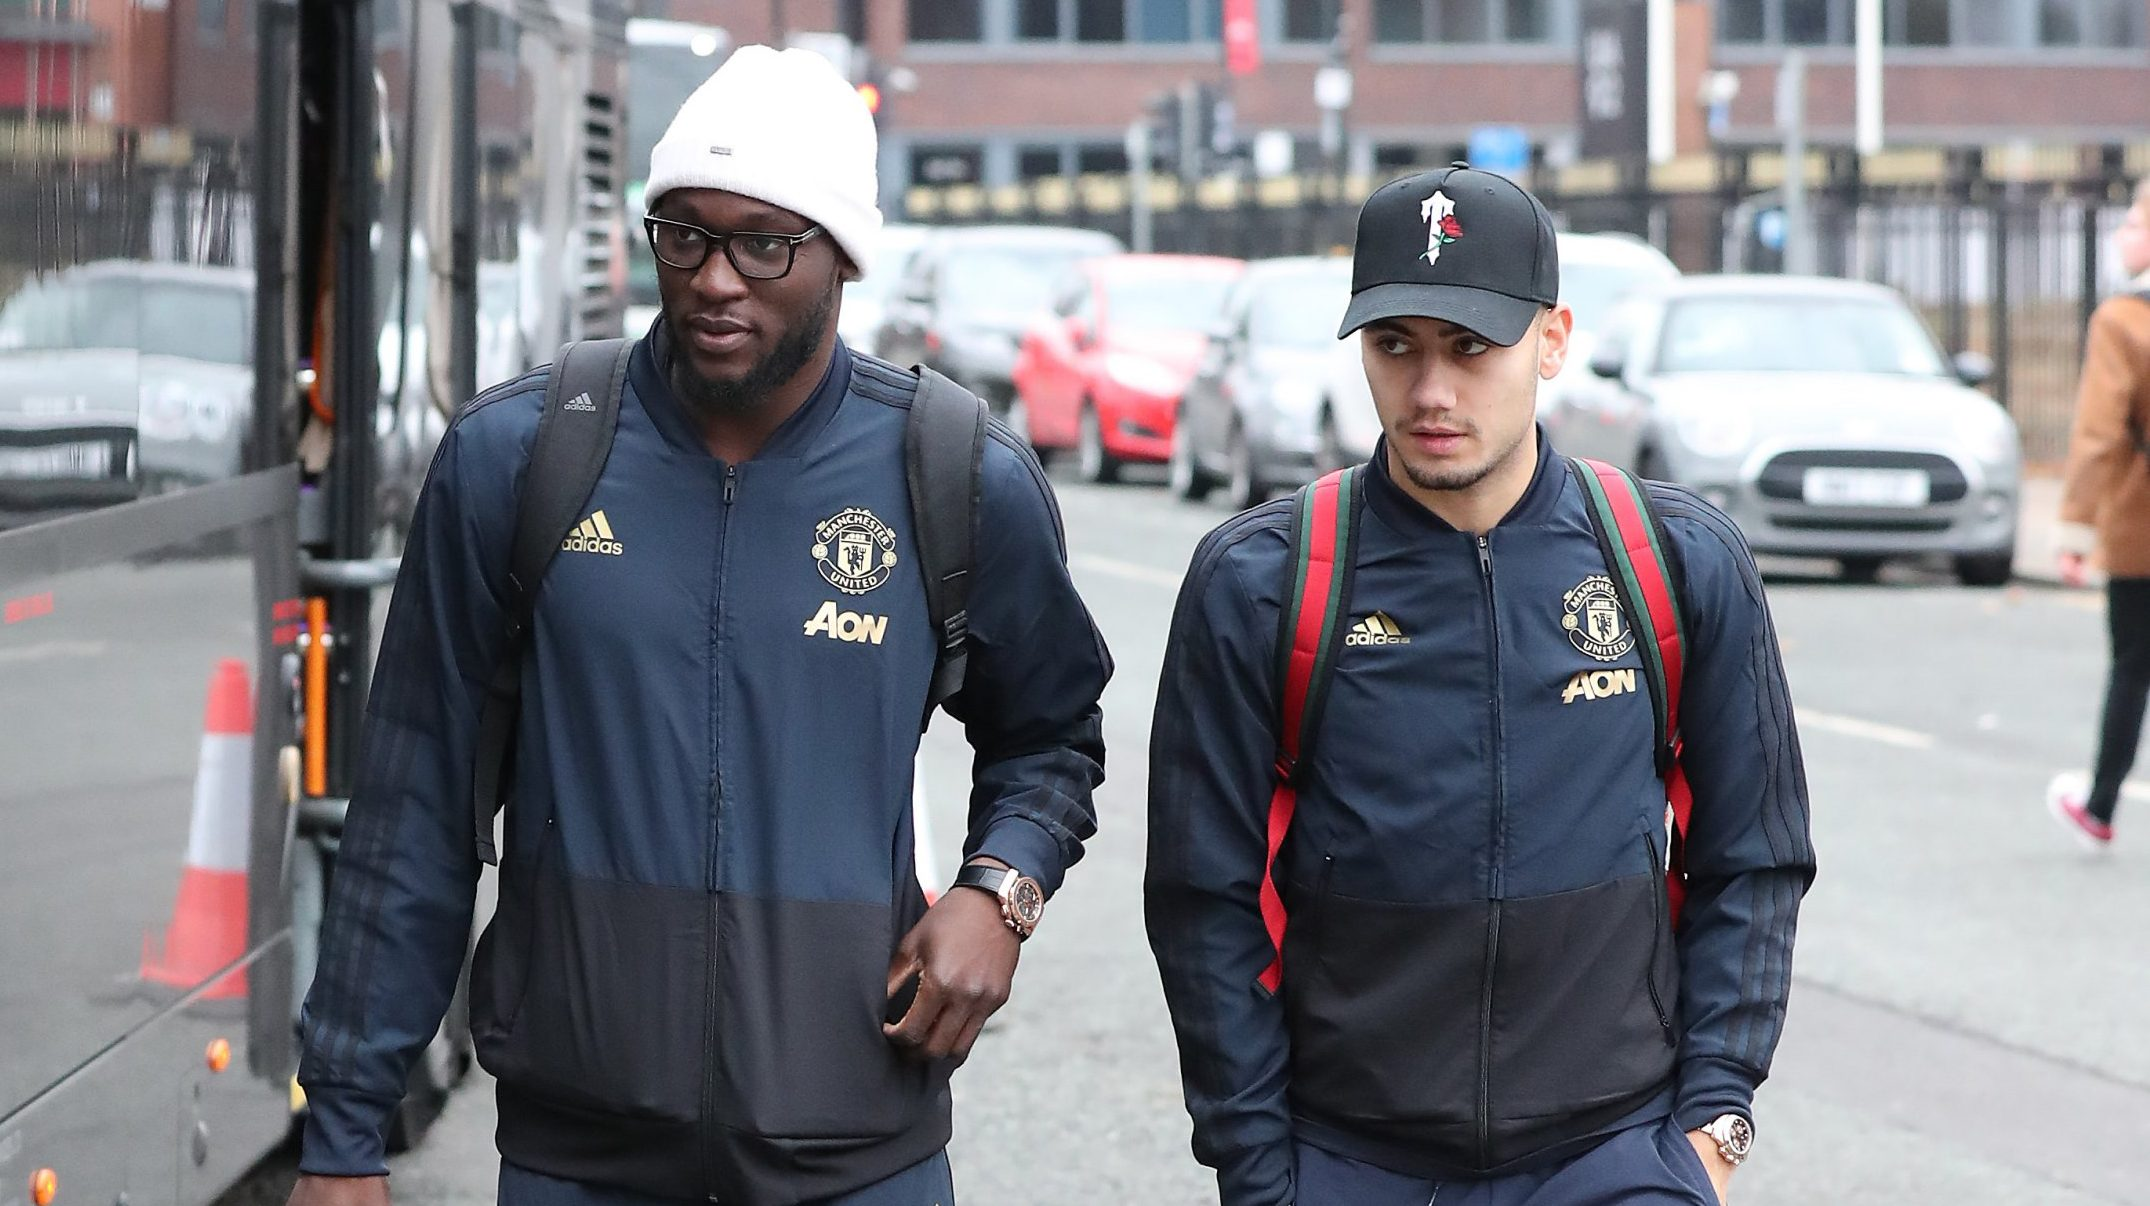 27.11.18??????. The Manchester United team change hotels again as the arrive at the Hilton Garden Hotel at Old Trafford Cricket Ground on Tuesday morning for their Champions League match against Young Boys on Tuesday. The hotel is 1000 yards away from Old Trafford Football Stadium??????.. Andreas Pereira and Romelu Lukaku.